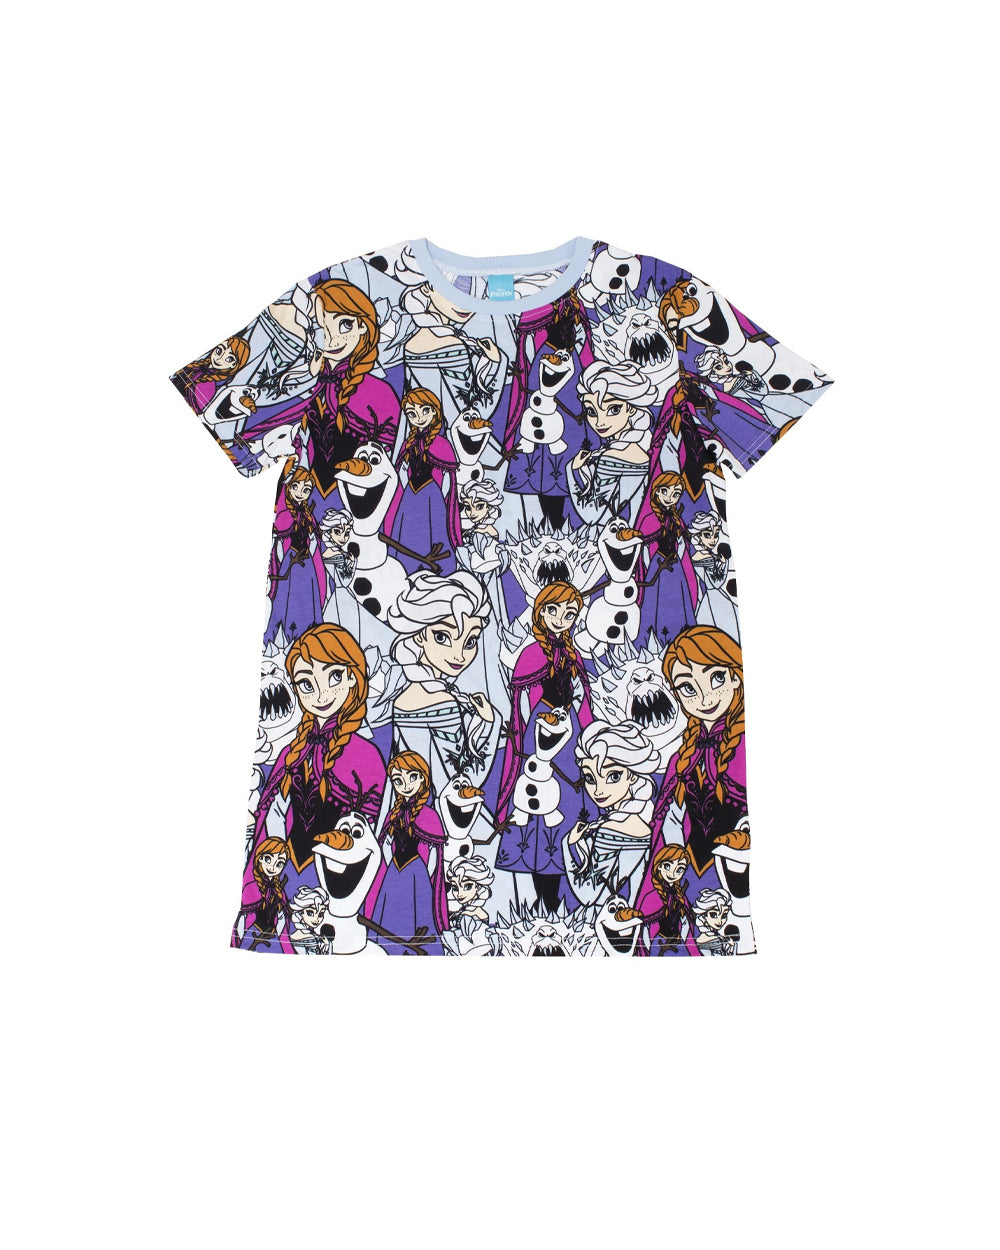 Cakeworthy - Disney Frozen AOP Unisex Tee - The Pink a la Mode